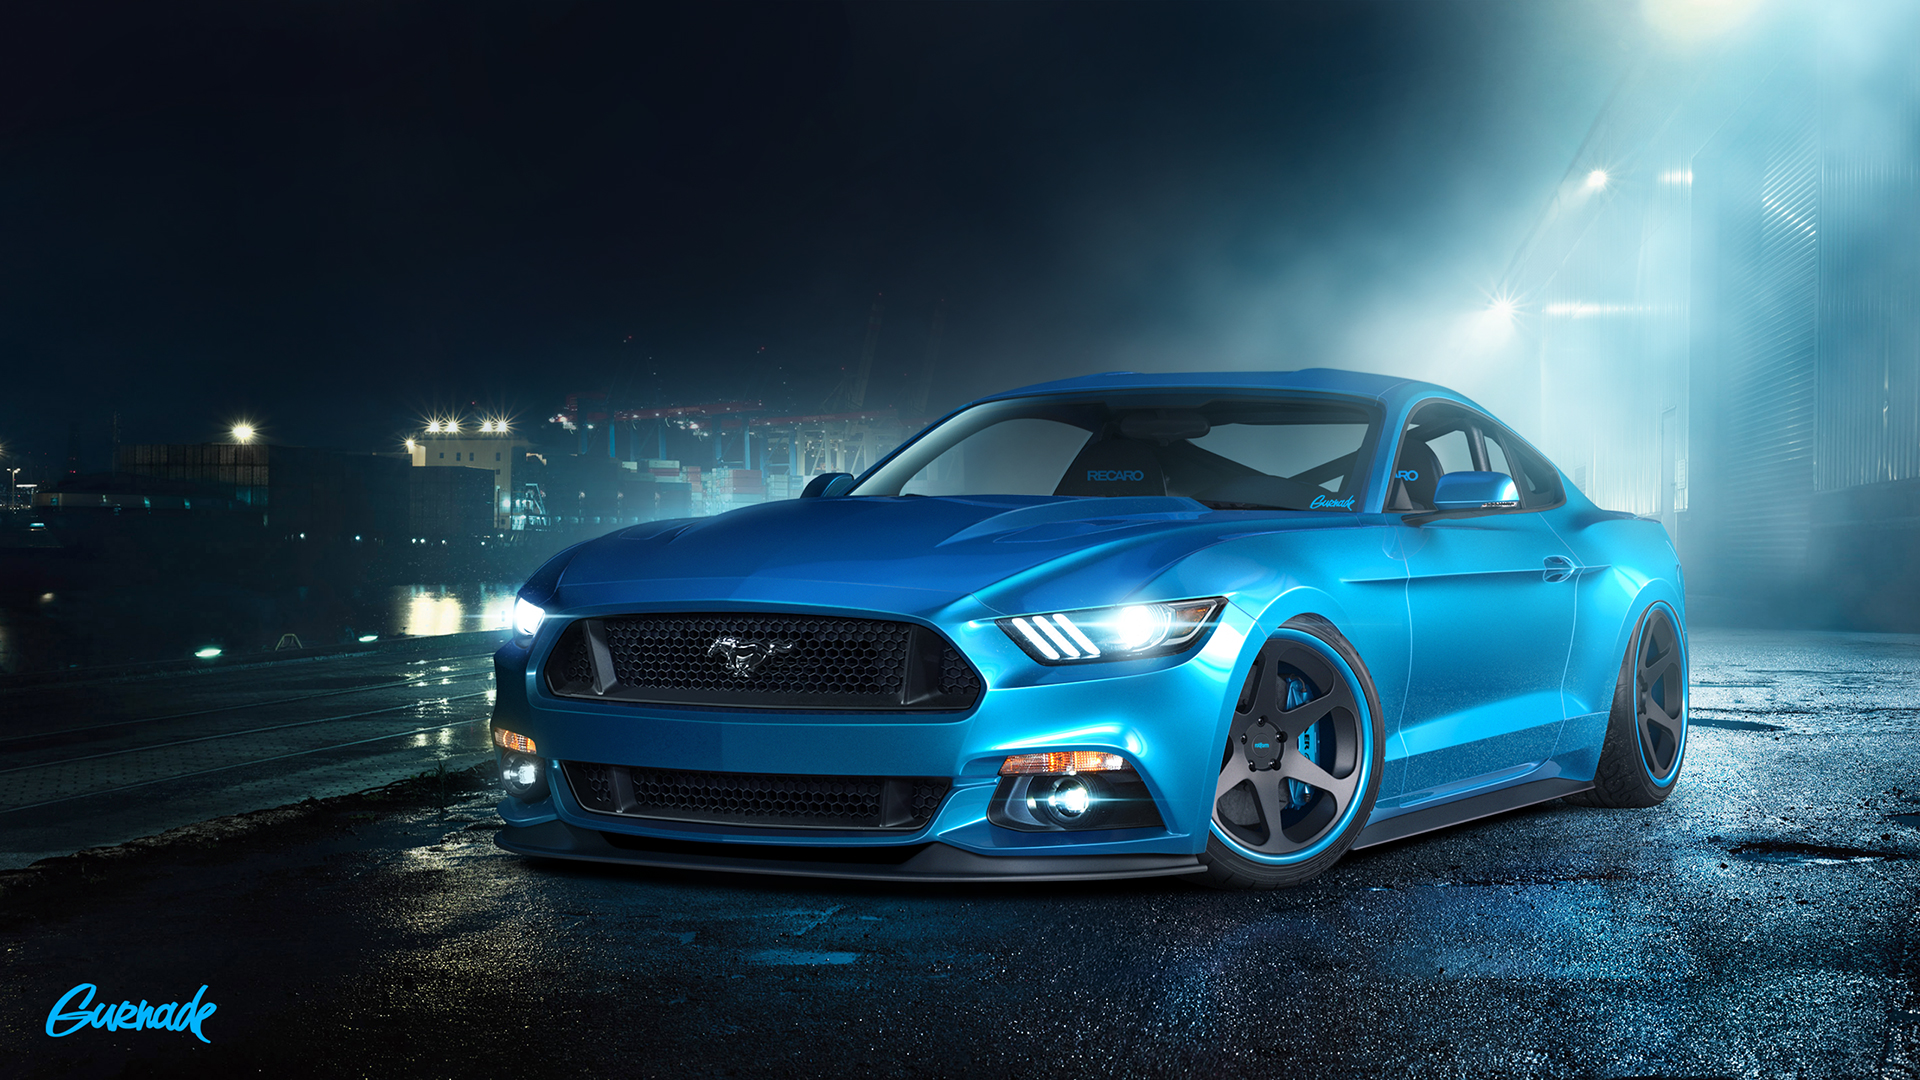 ford mustang gt wallpapers high quality download free. Black Bedroom Furniture Sets. Home Design Ideas